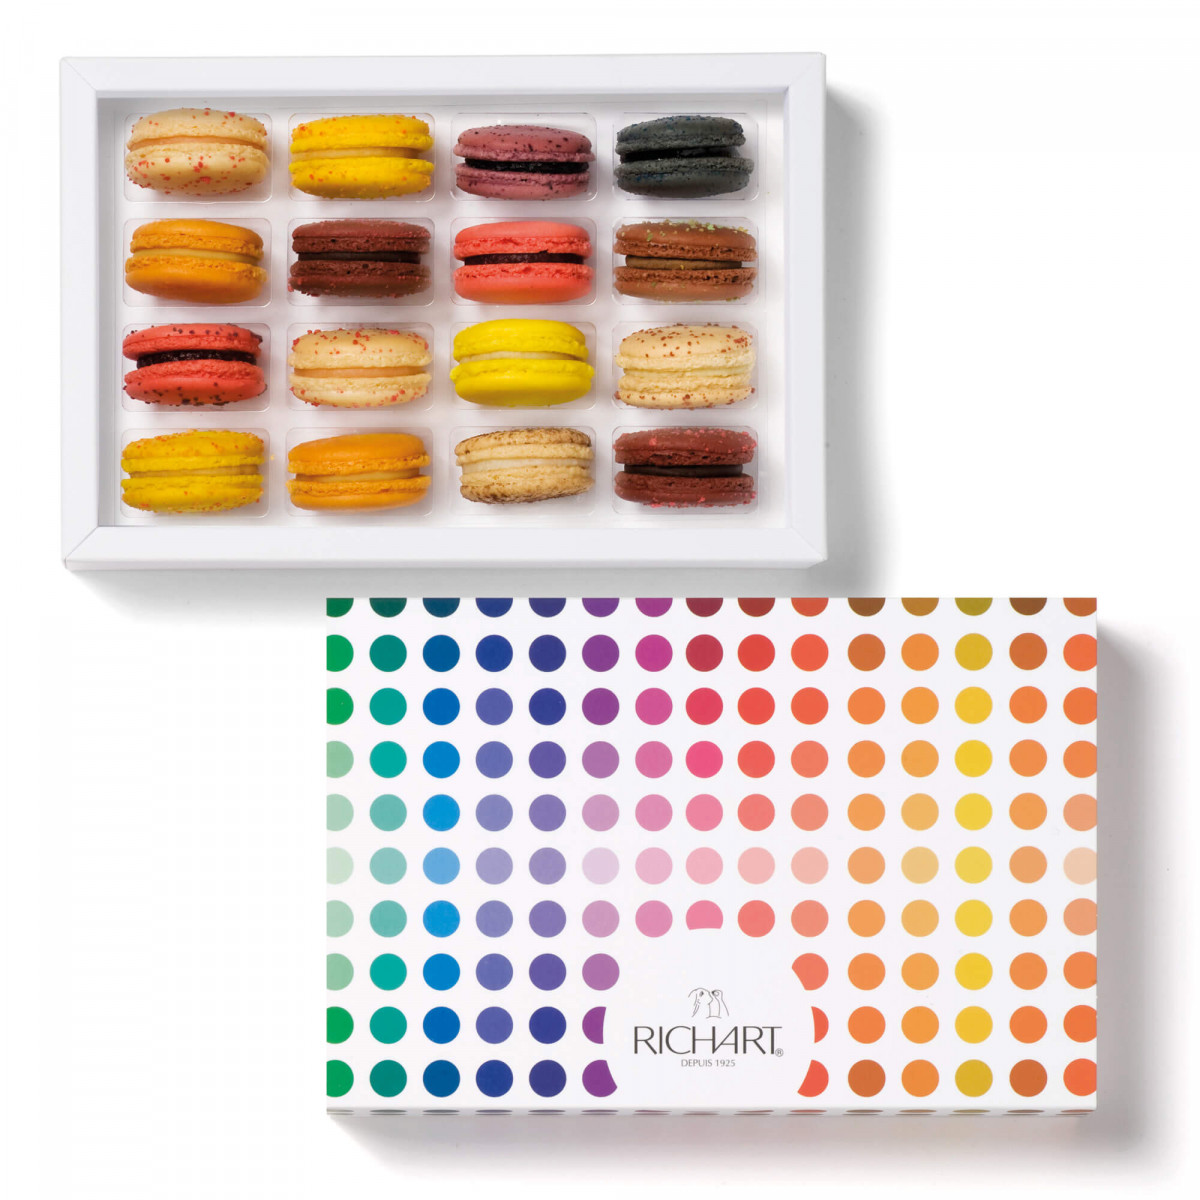 In the orchard Box of 16 French macarons